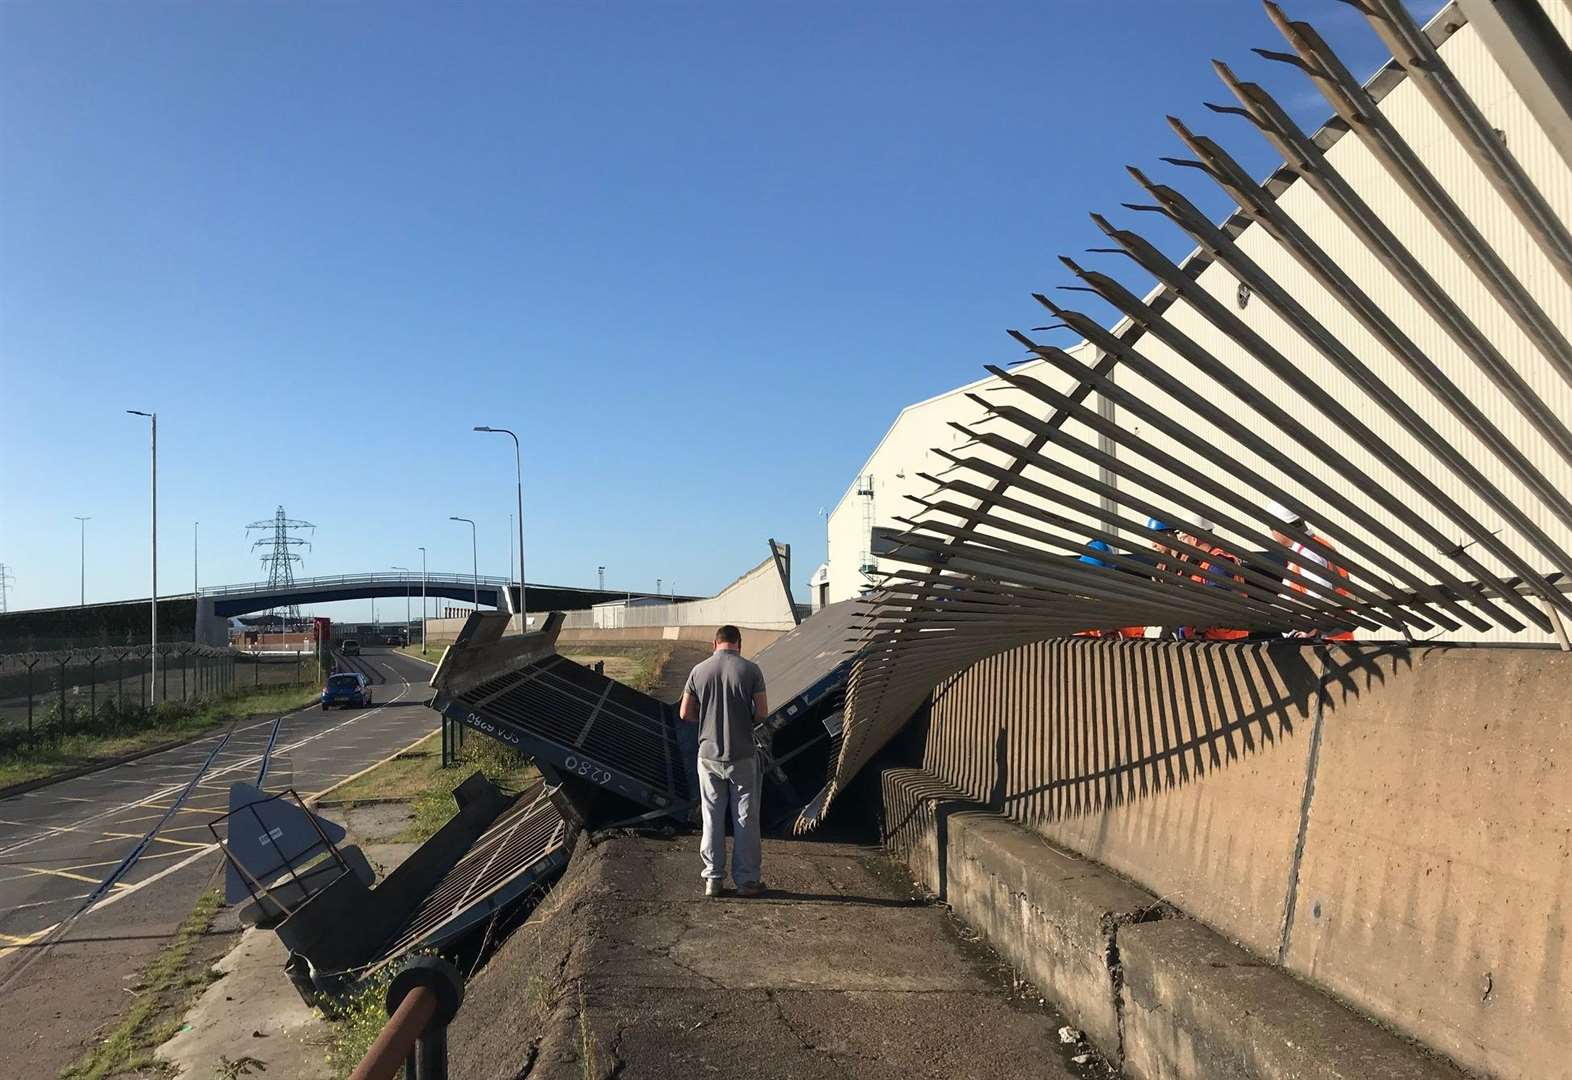 Trailer crushes security fence at port